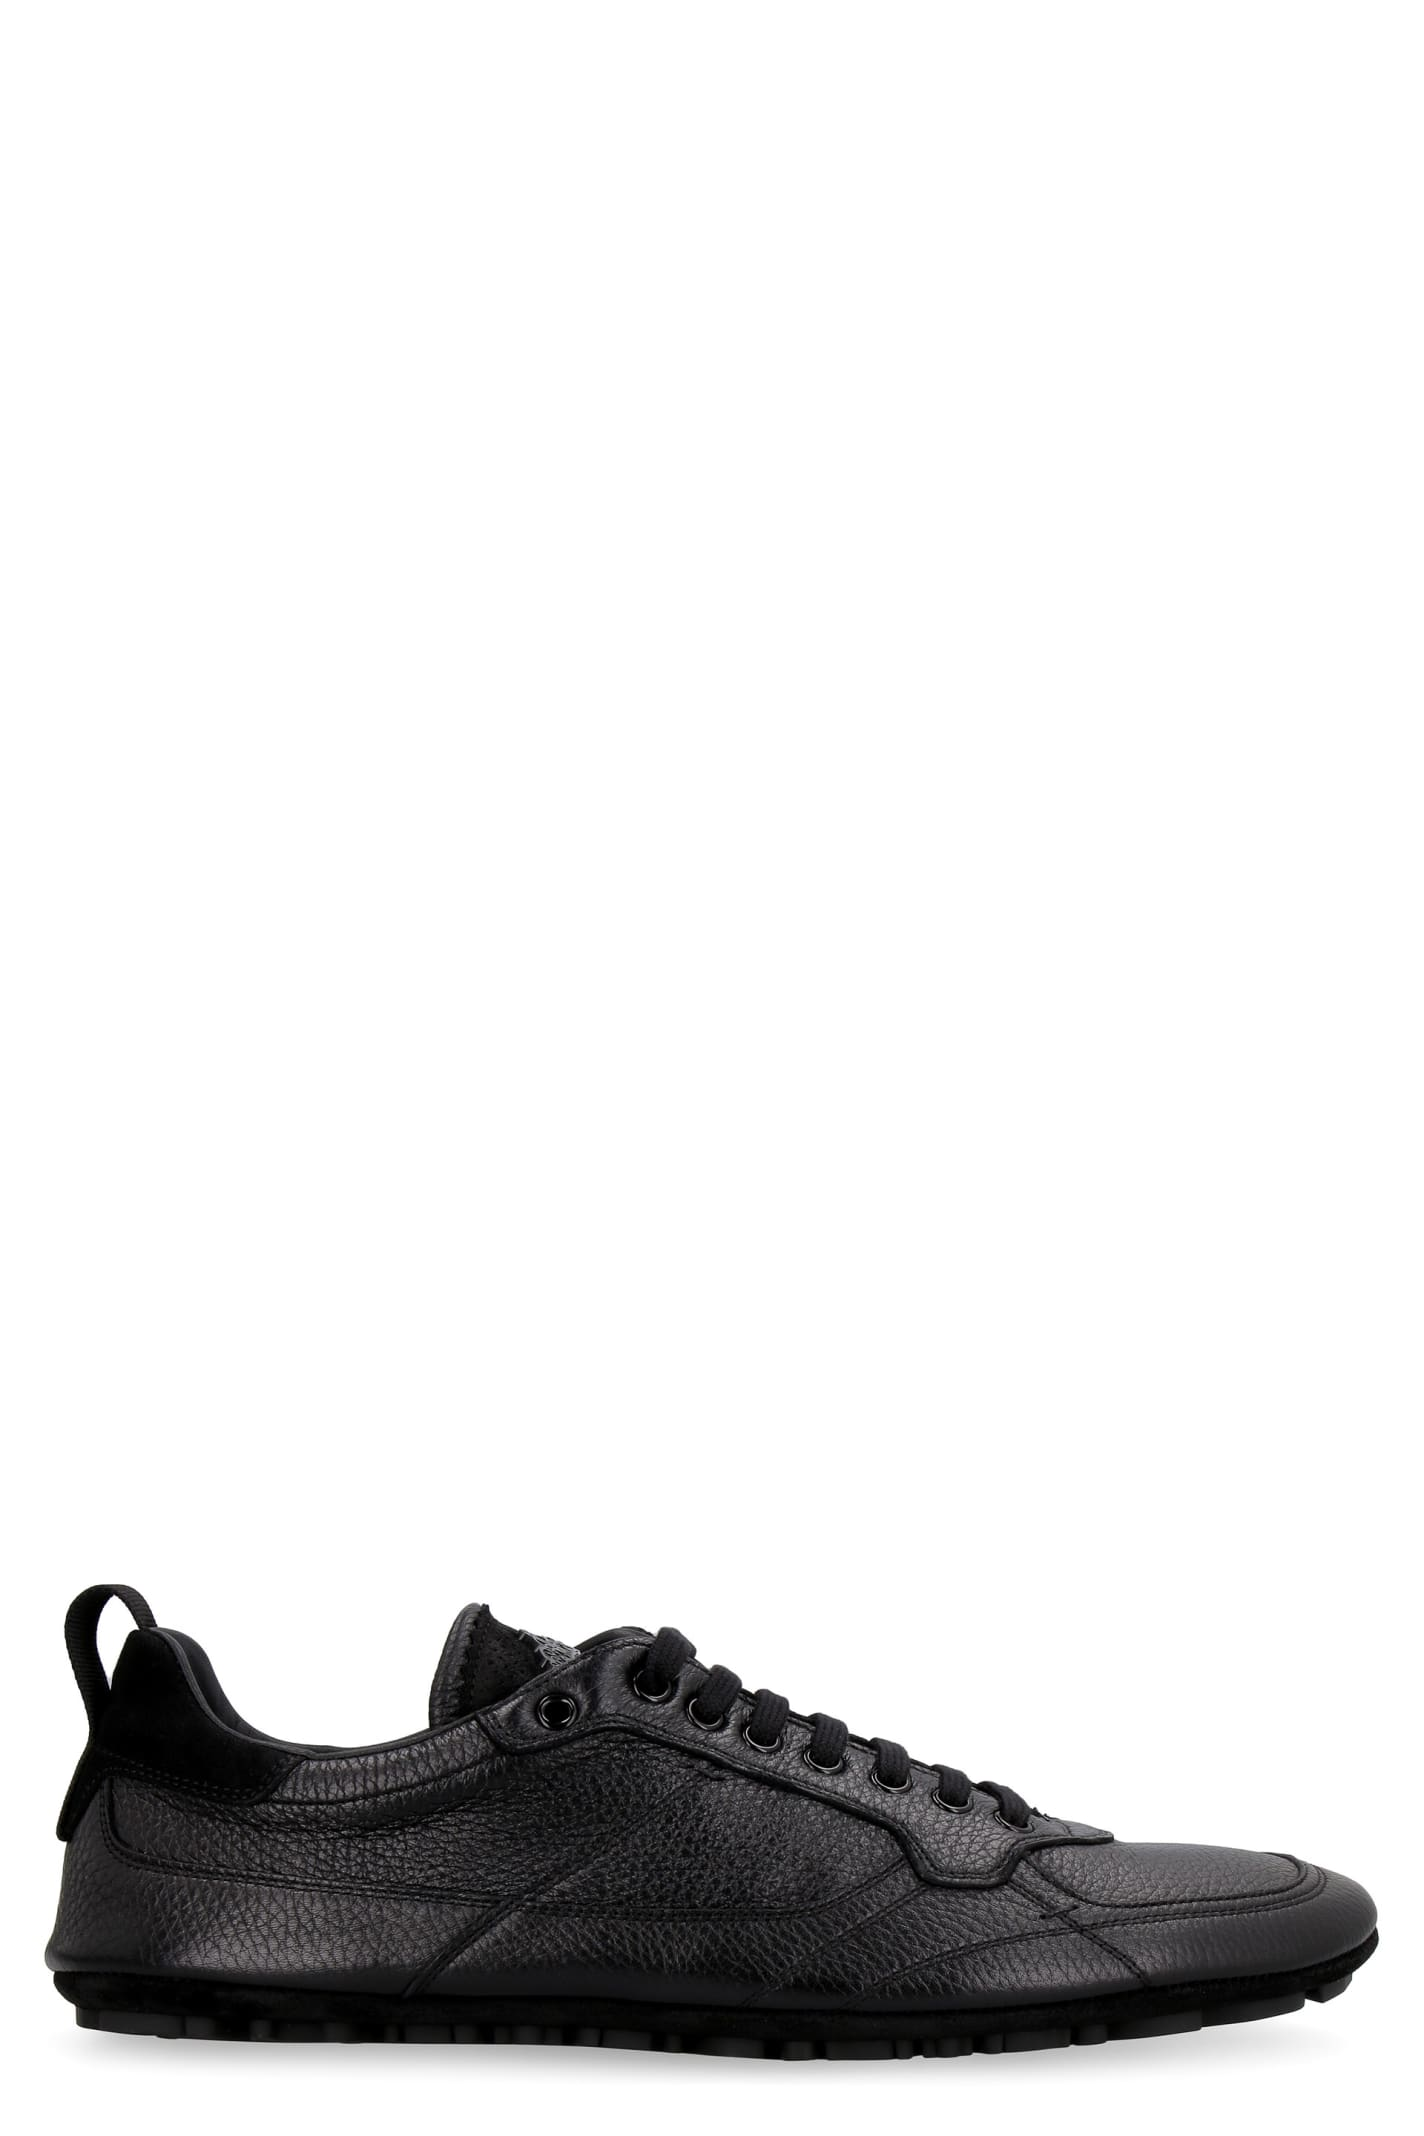 Dolce & Gabbana King Driver Leather Low-top Sneakers